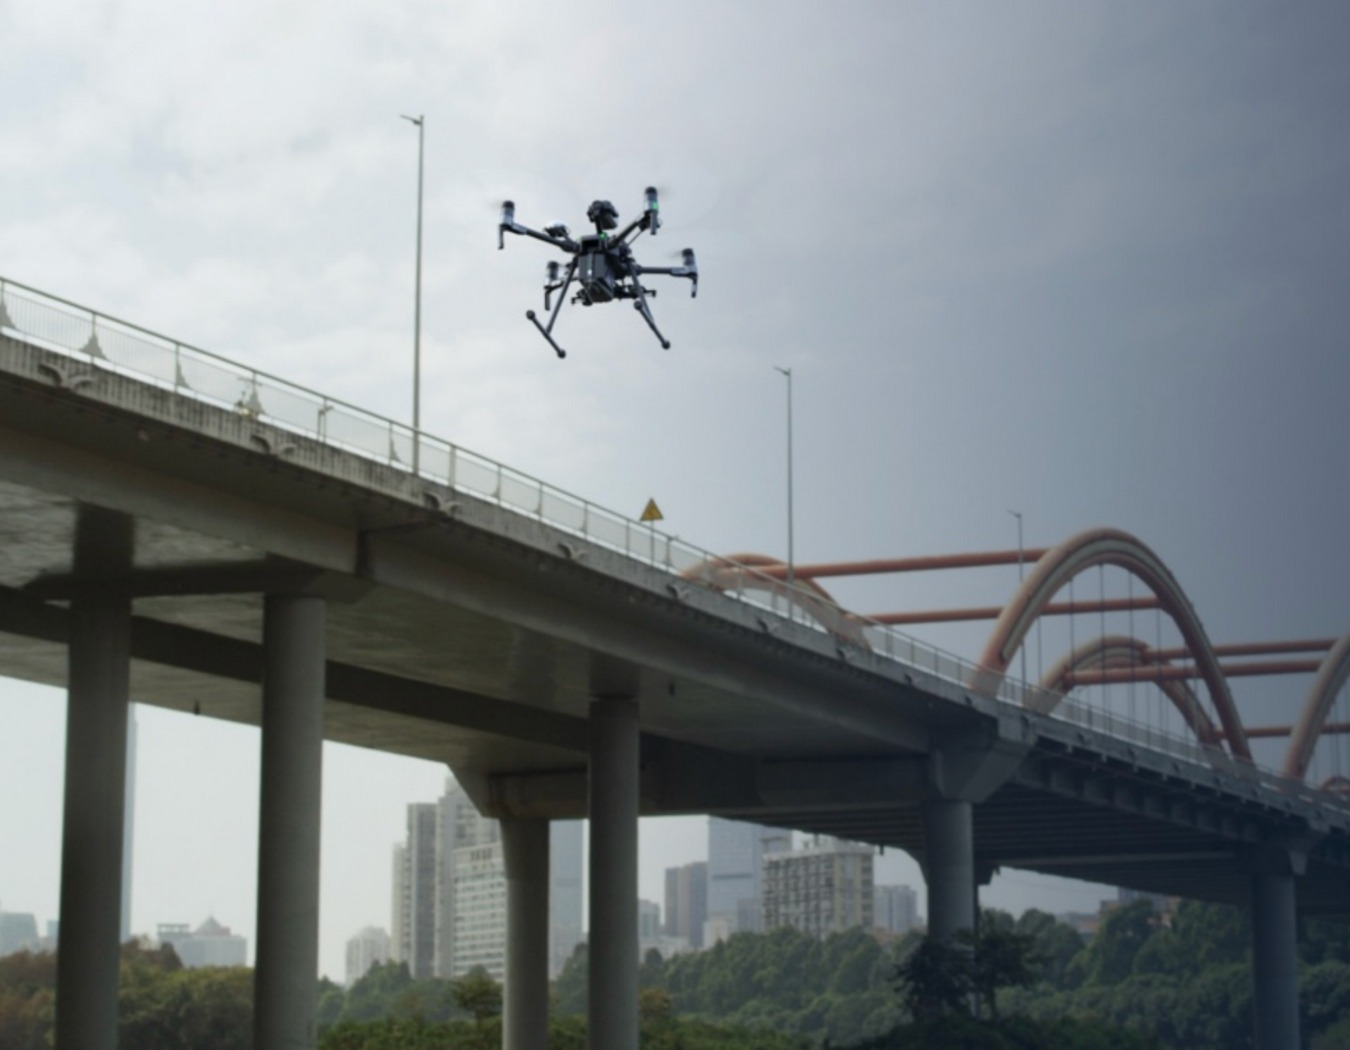 DJI Matrice 200 Series Bridge Inspection